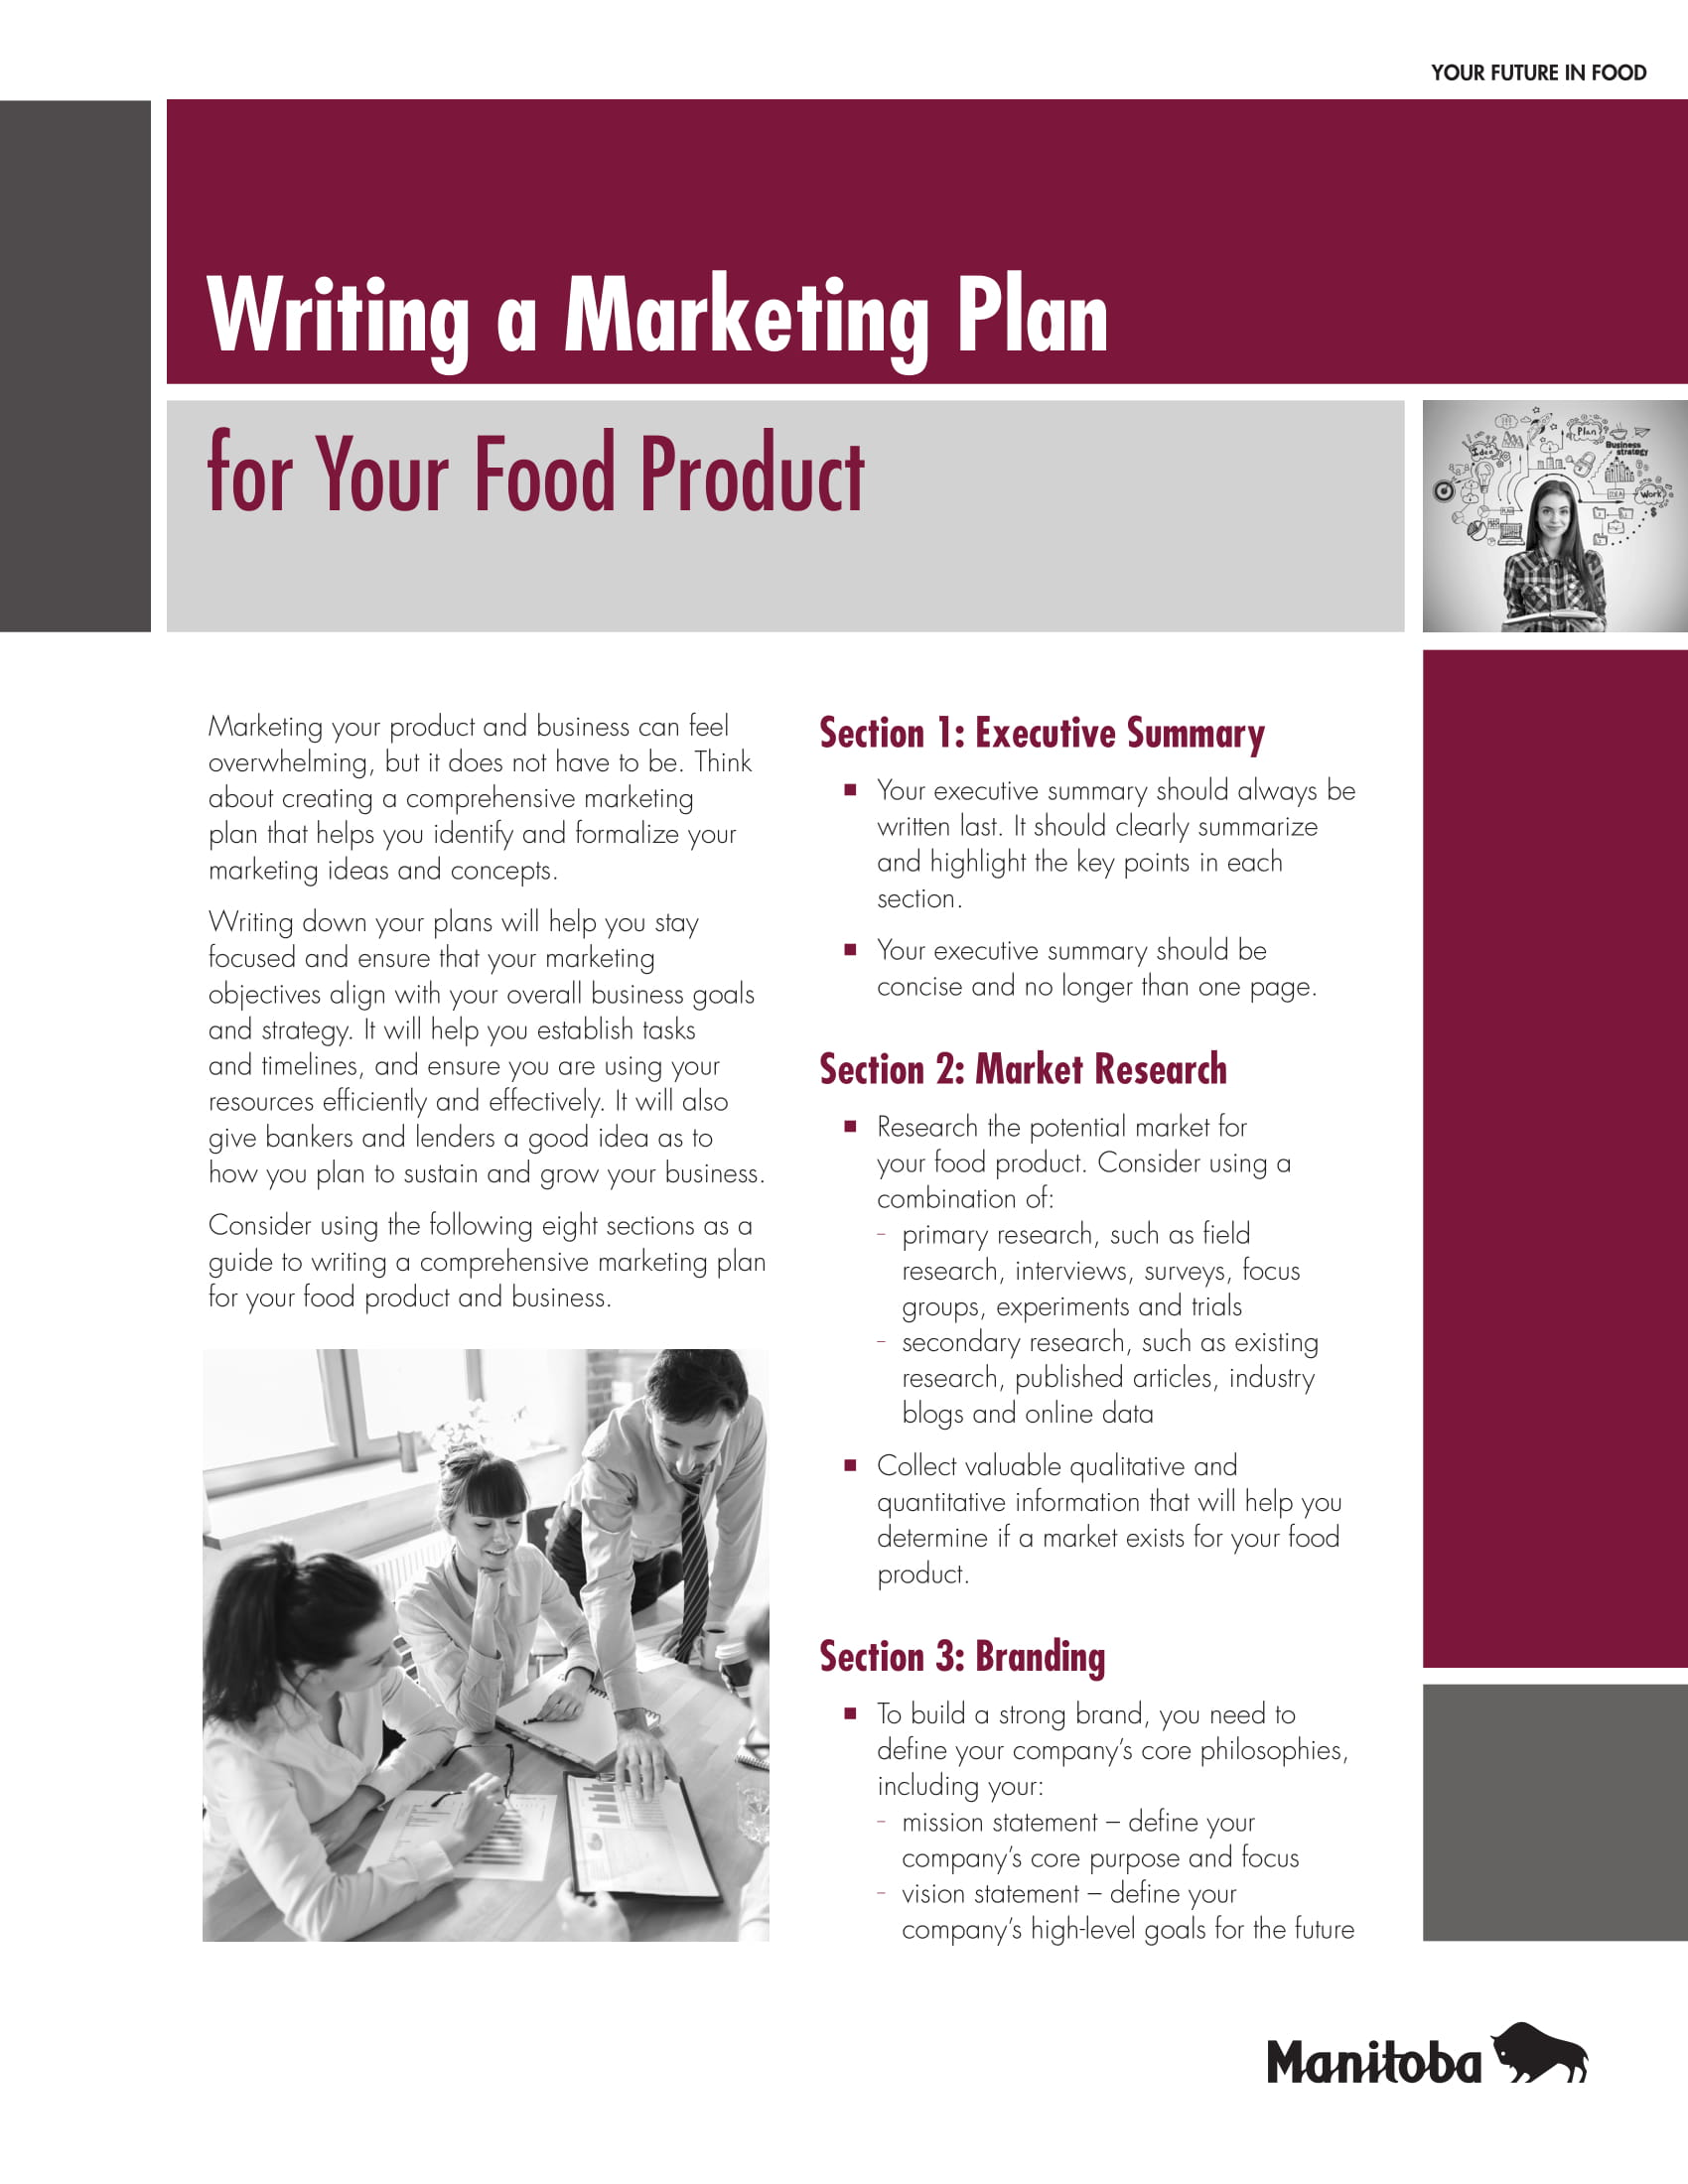 marketing plan for a new food product example 1